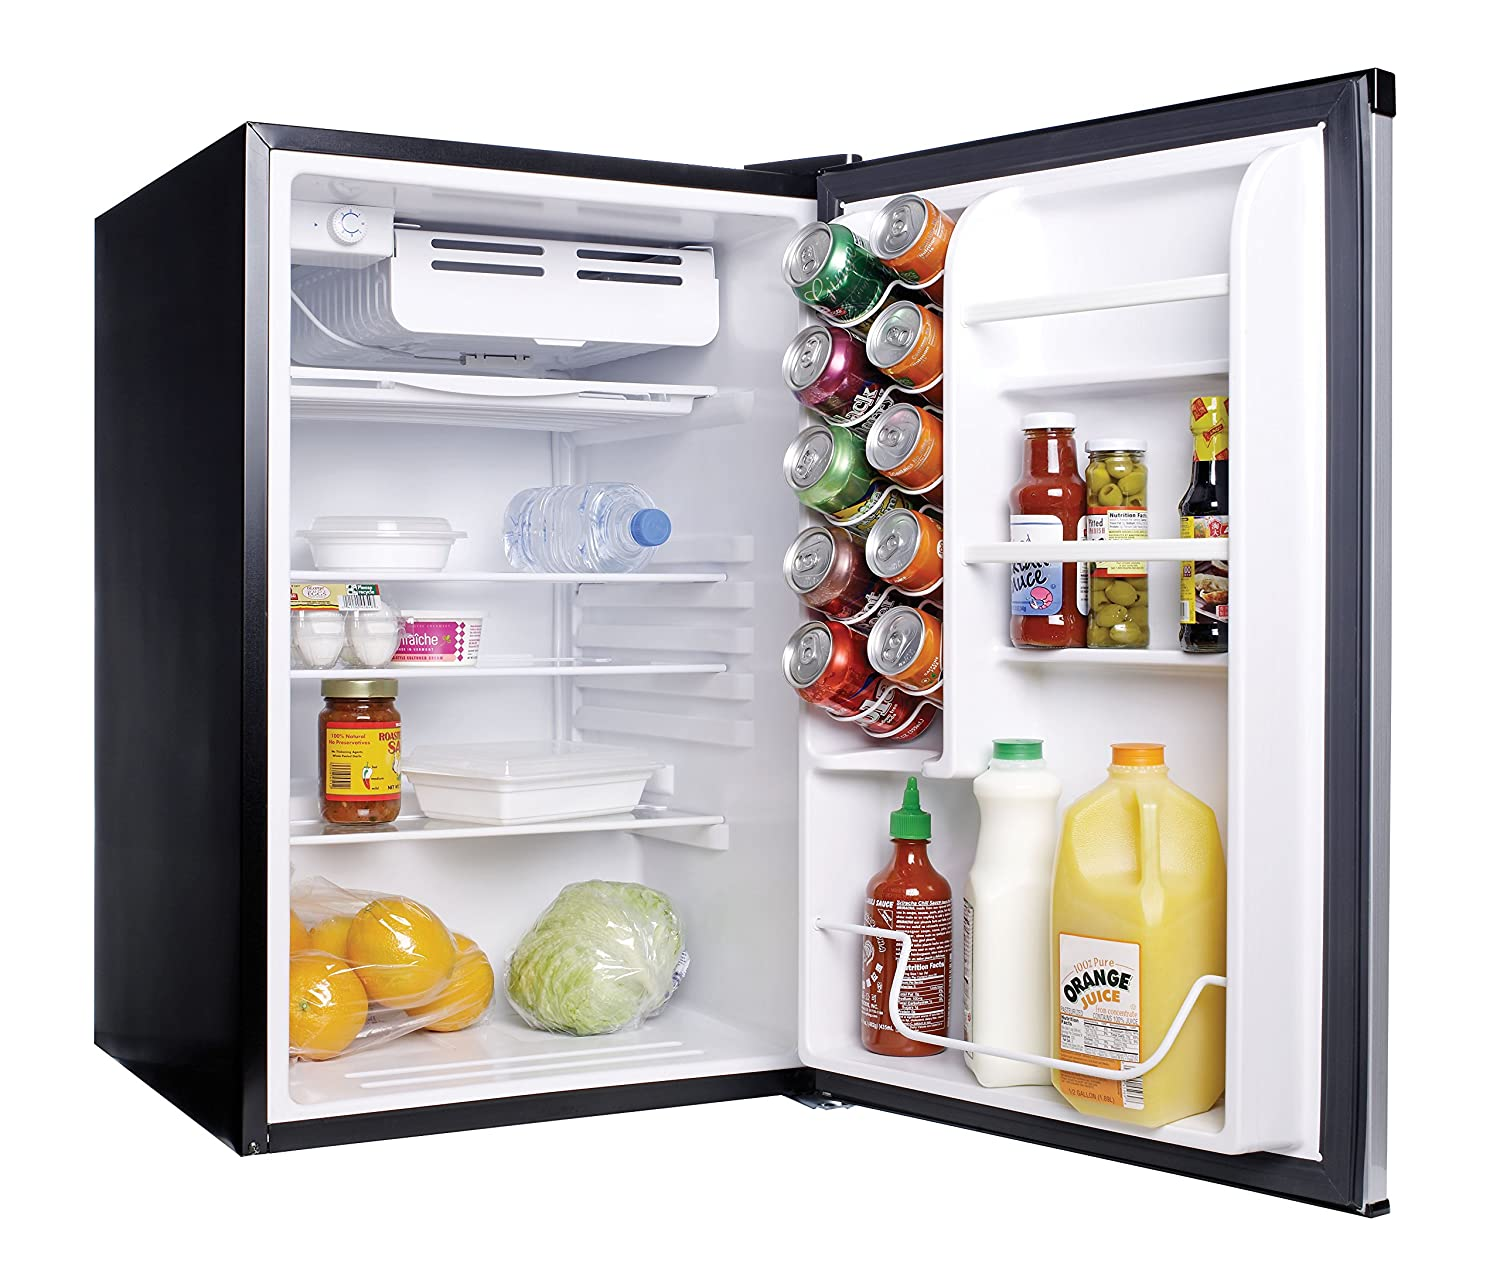 refrigerator 4 5 cu ft. amazon.com: haier hc45sg42sv 4.5 cubic feet refrigerator/freezer, white interior, vcm door: appliances refrigerator 4 5 cu ft l